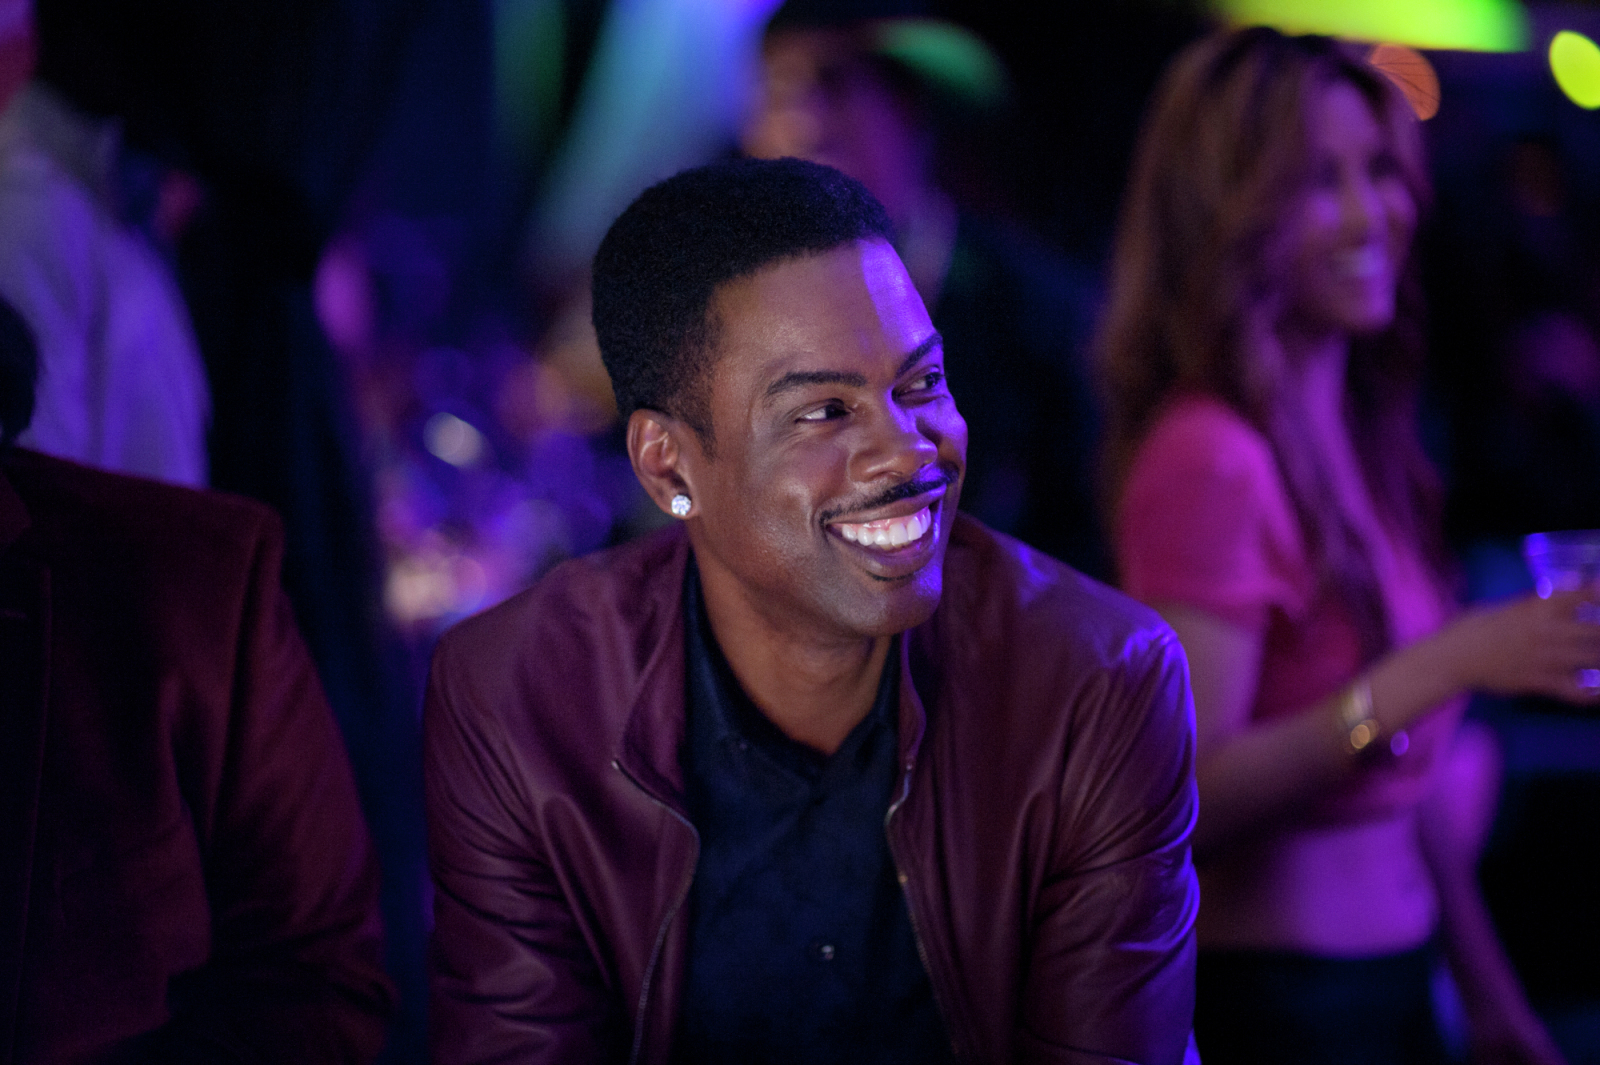 Chris Rock Reveals His Top 5 Favorite Comedies While Promoting His New Film 'Top Five'